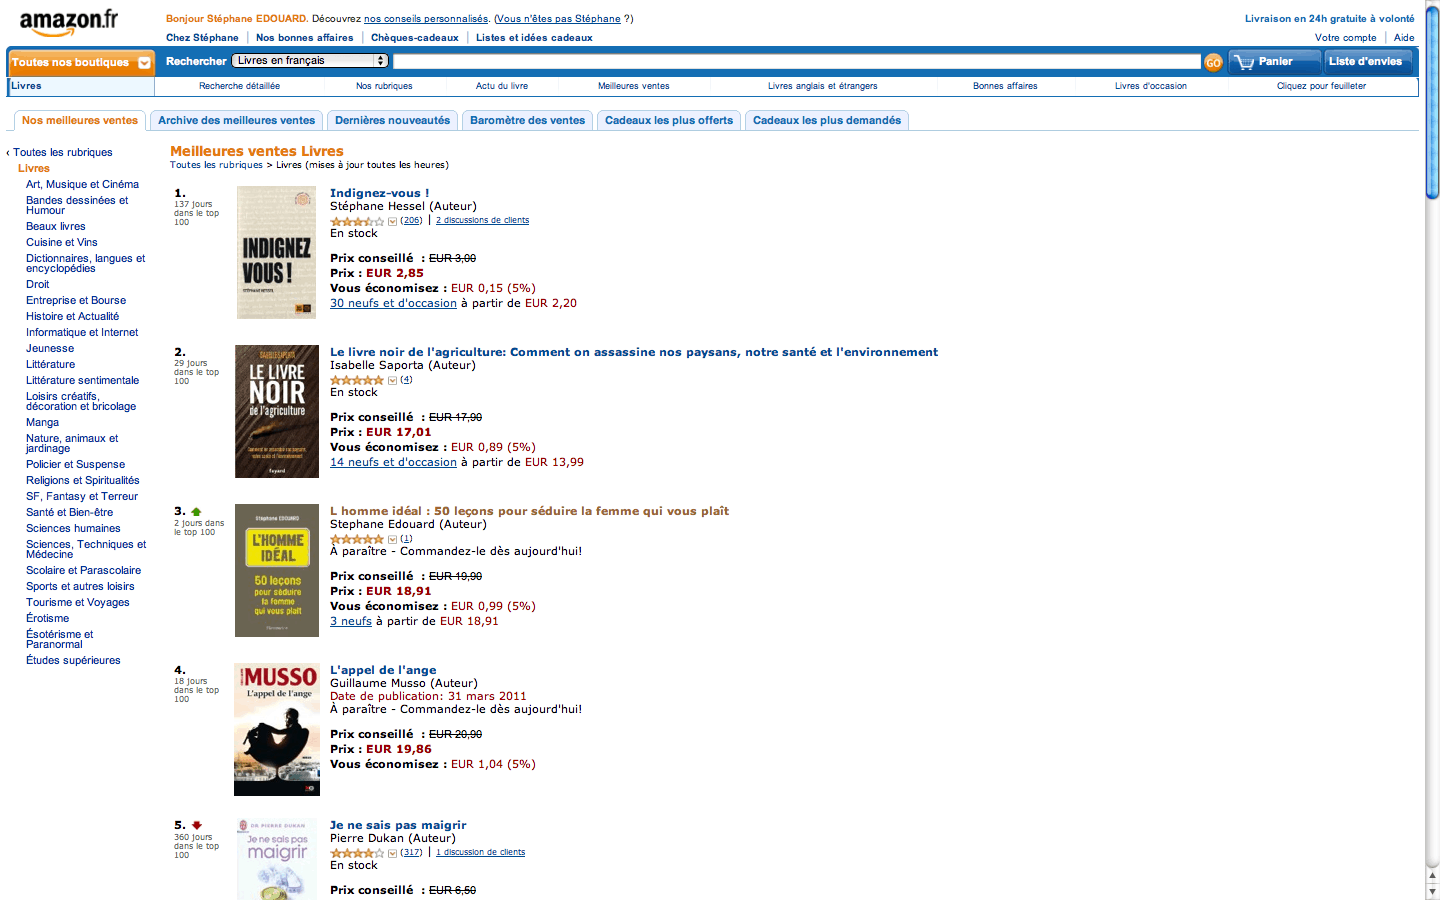 homme ideal amazon p3